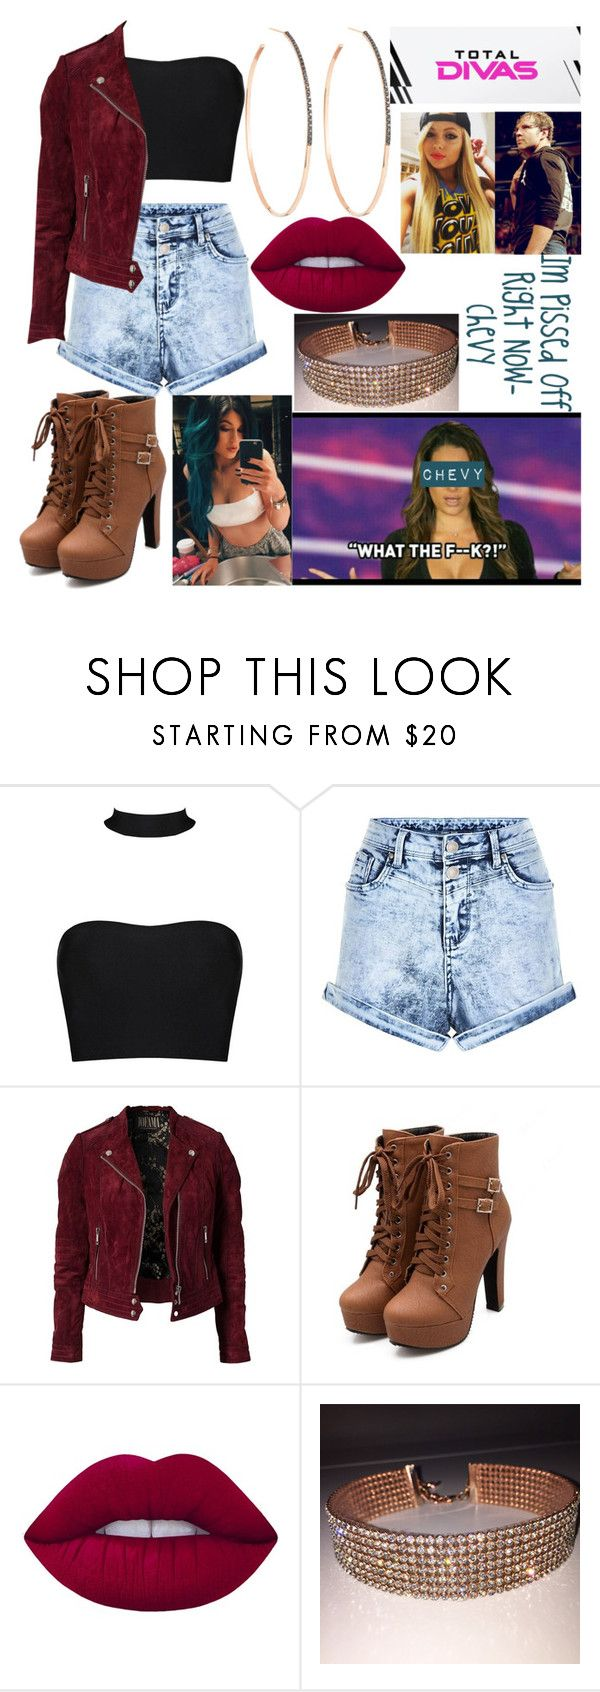 """Chevy's Interview with Total Divas"" by amesqueda ❤ liked on Polyvore featuring Jofama, Lime Crime, Lana and TNA"